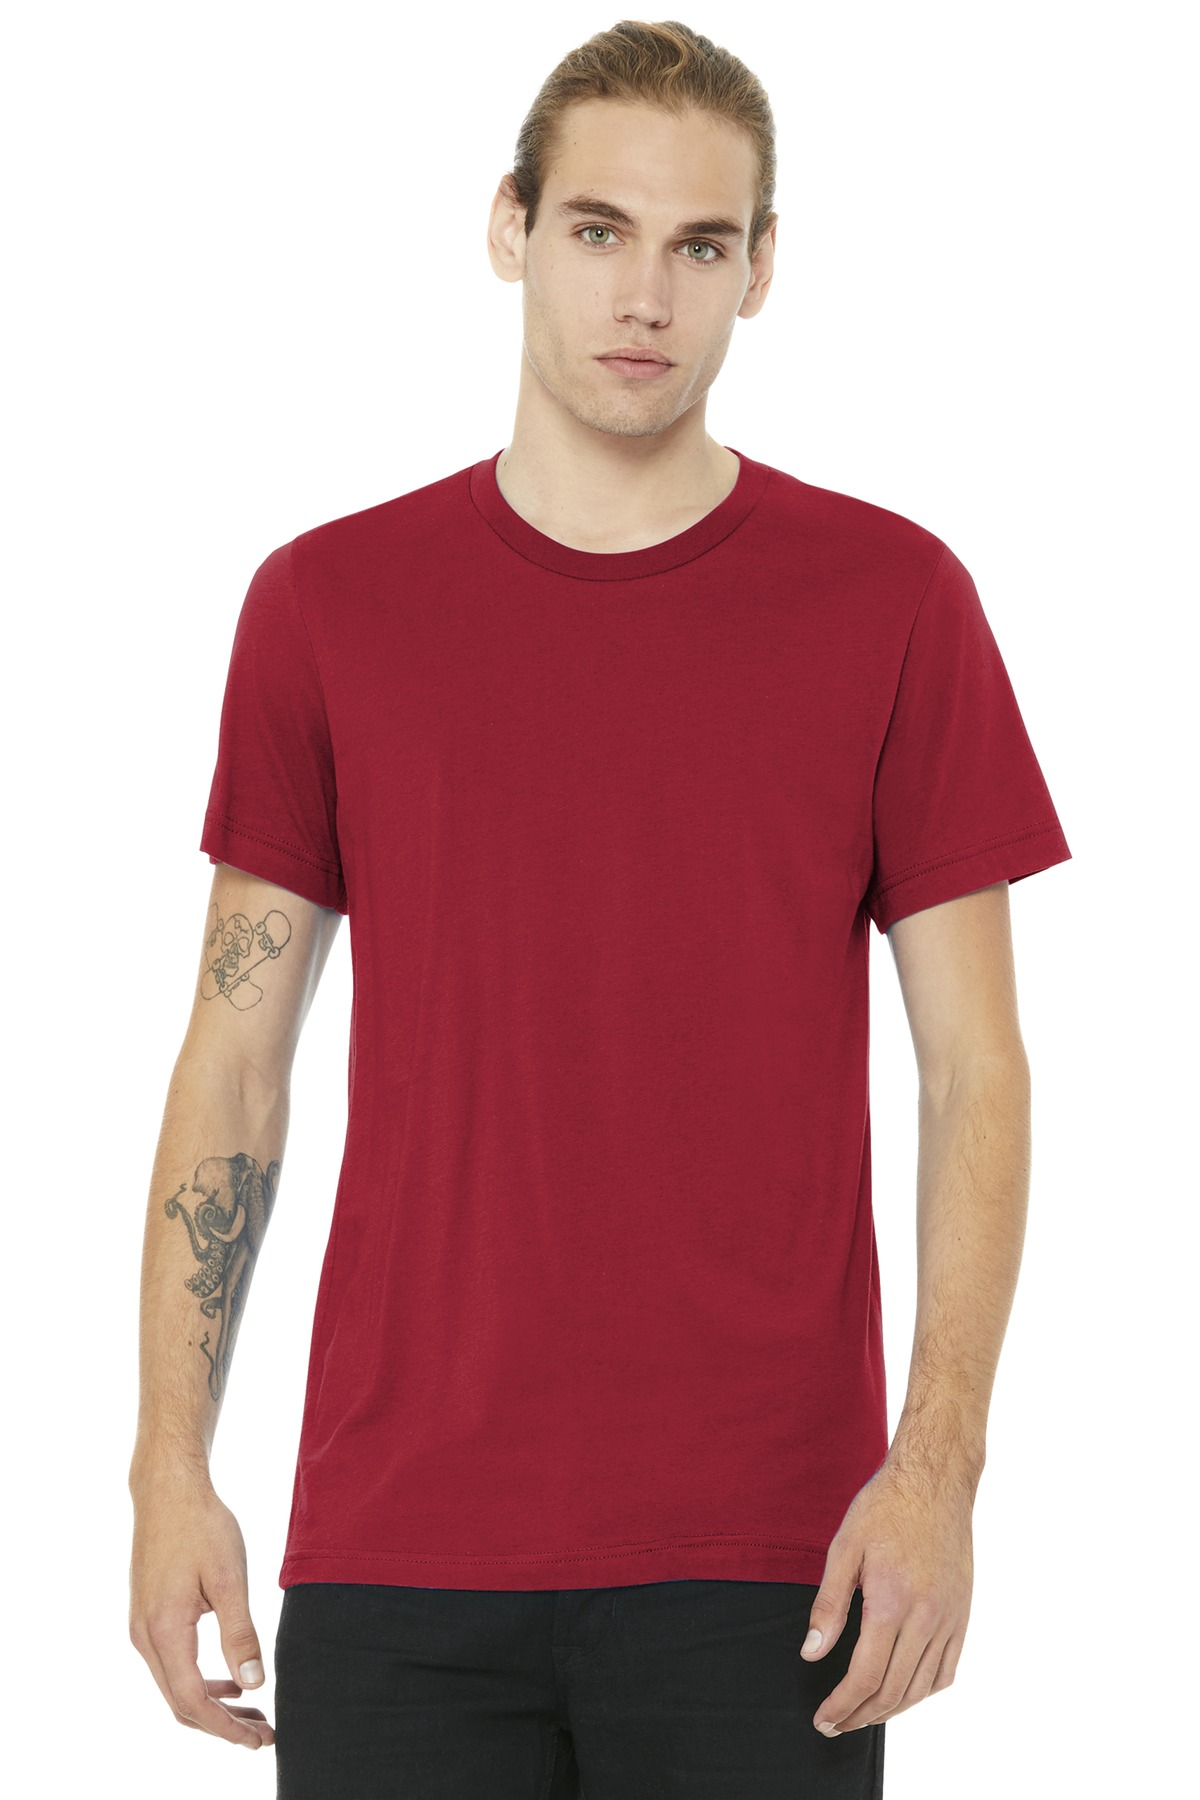 BELLA+CANVAS  ®  Unisex Jersey Short Sleeve Tee. BC3001 - Canvas Red